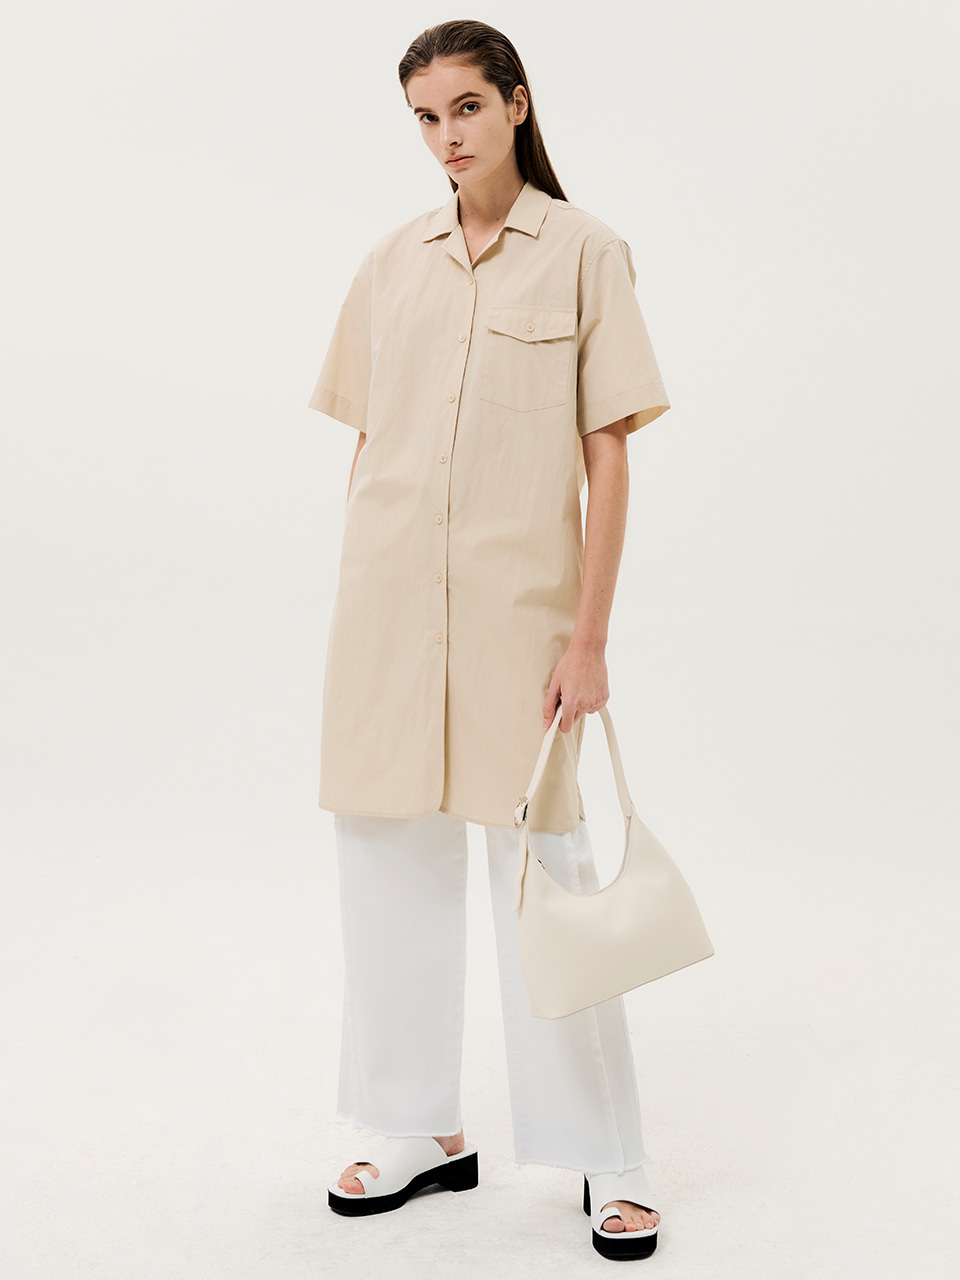 One Pocket Short Sleeve Shirts Dress Beige